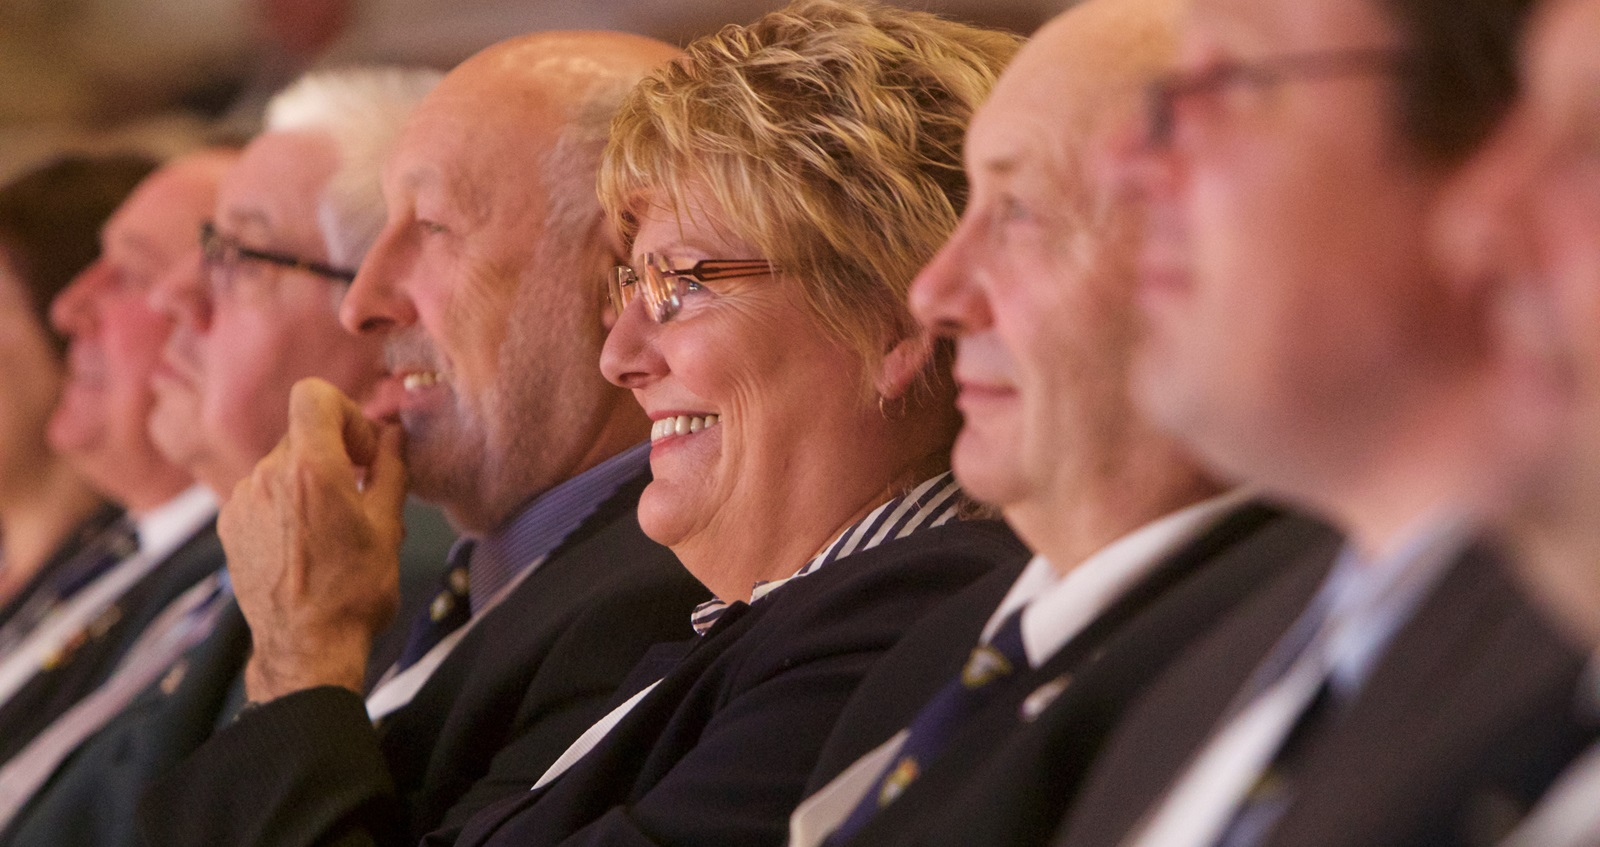 Legion members attending Annual Conference